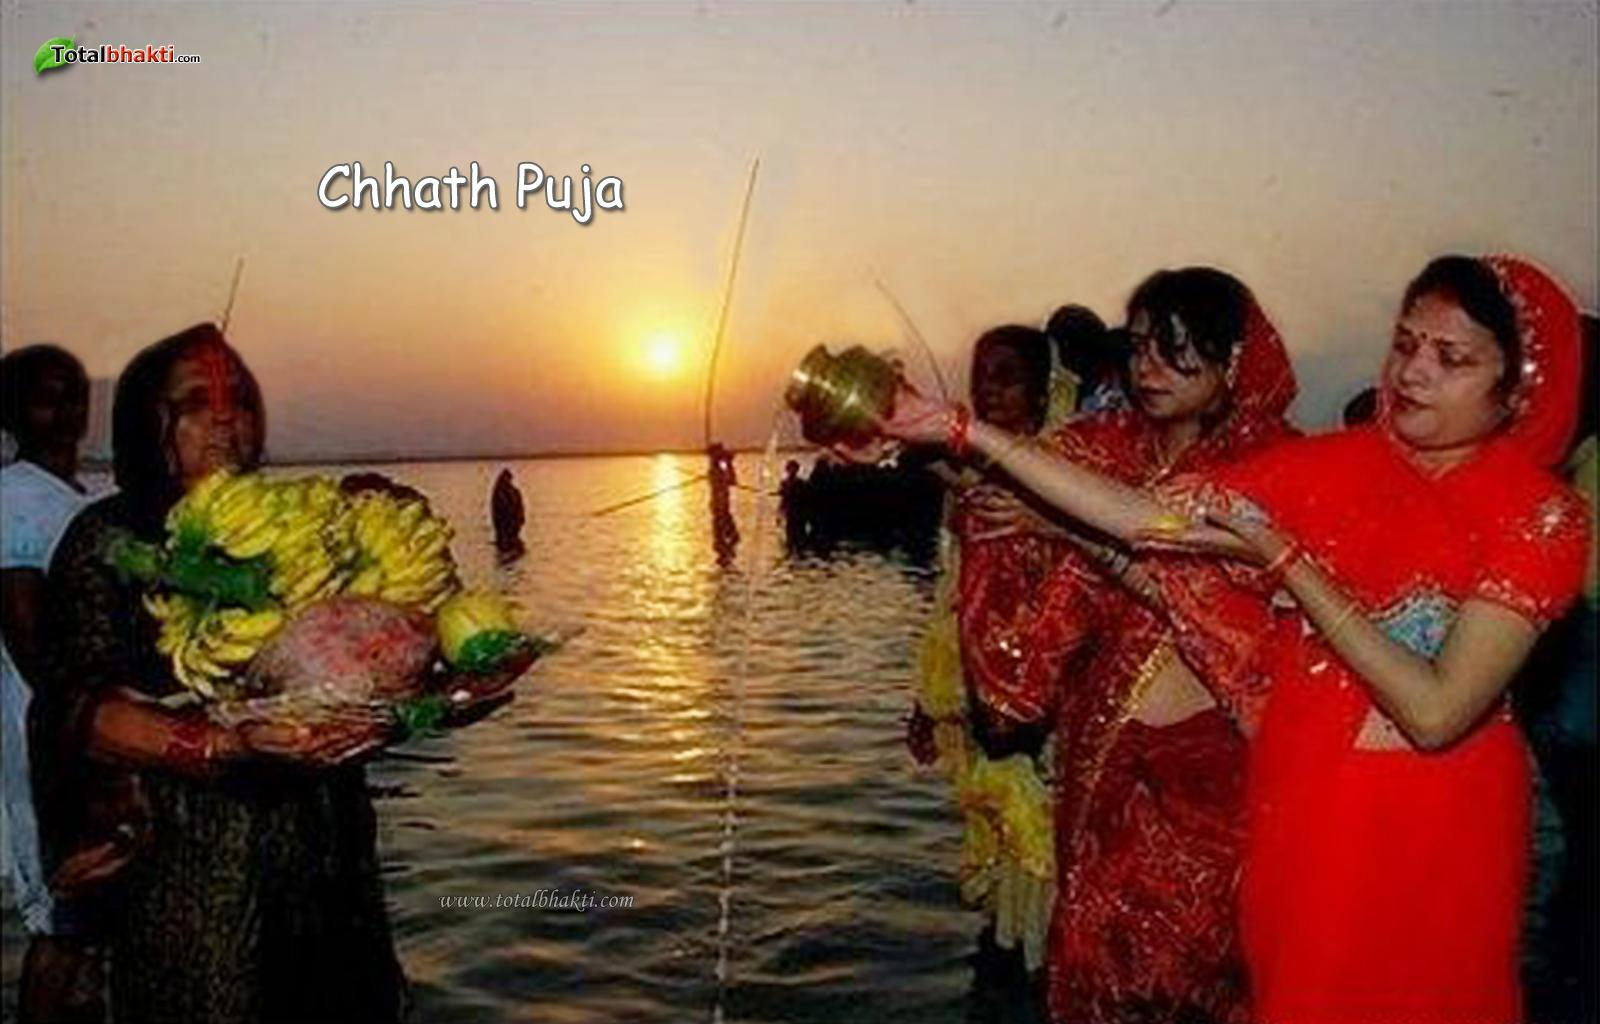 List of Synonyms and Antonyms of the Word puja